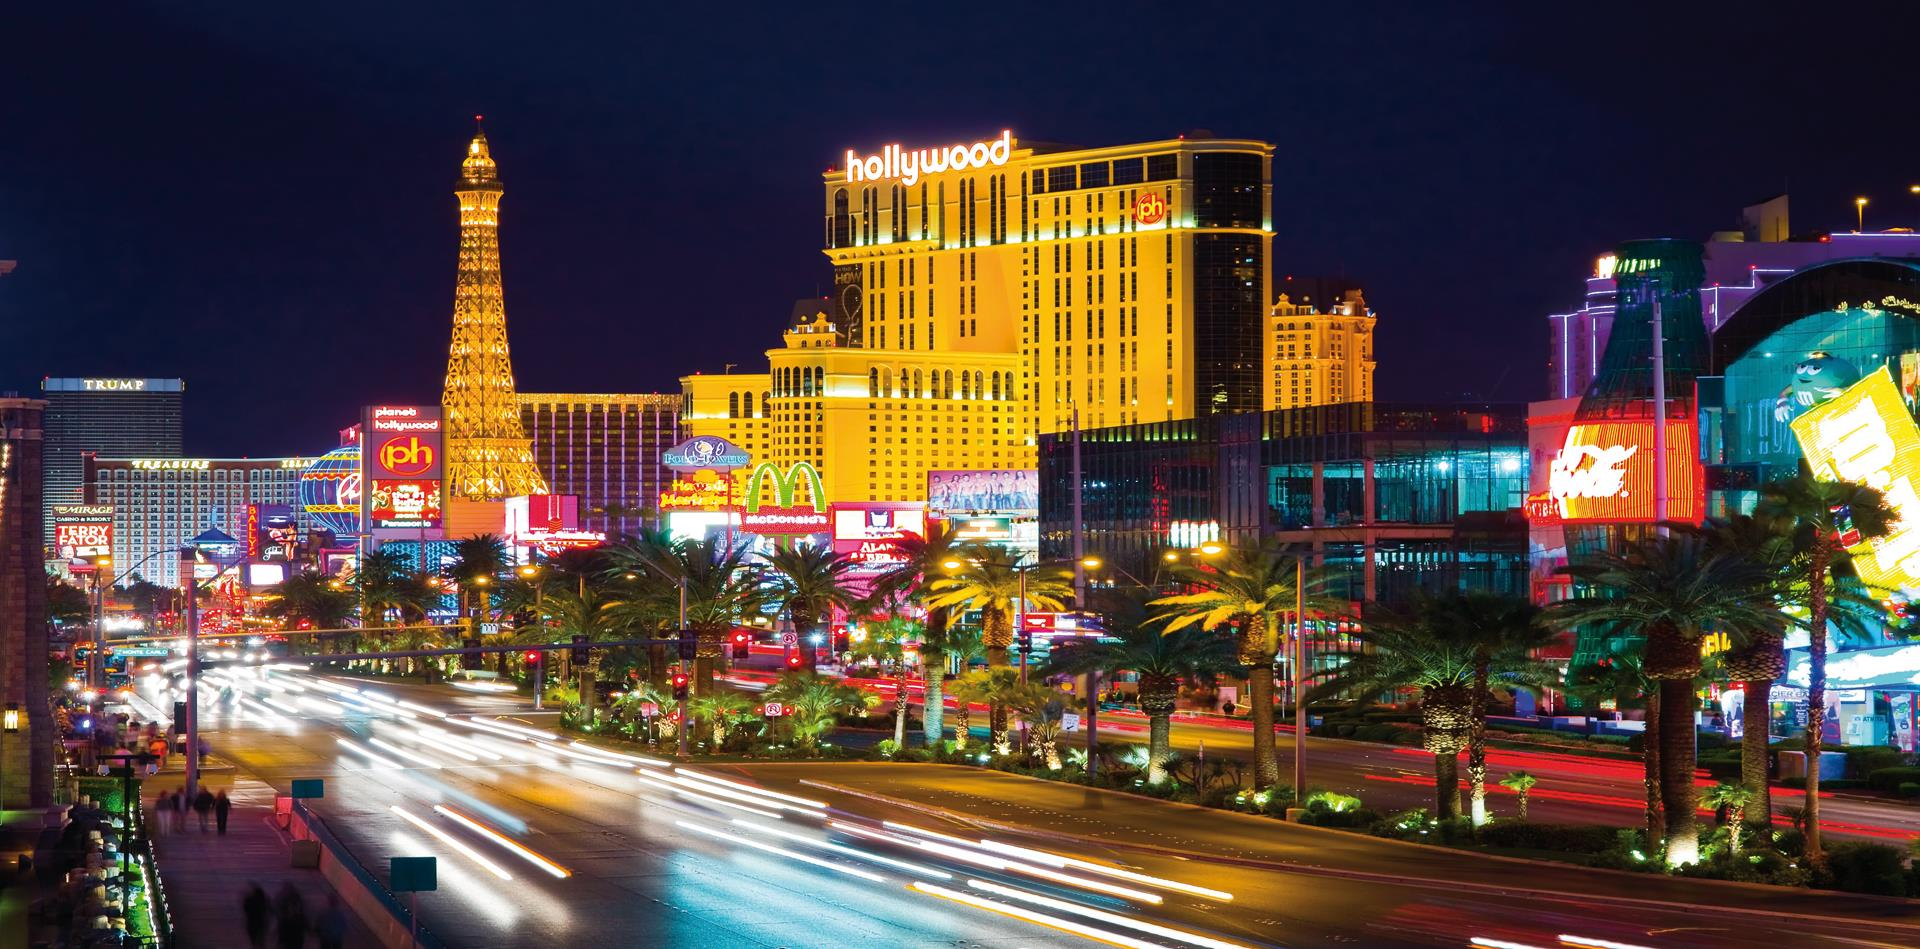 Las Vegas, San Francisco & Hawaiian Islands: Christmas & New Year Celebration! (RP)